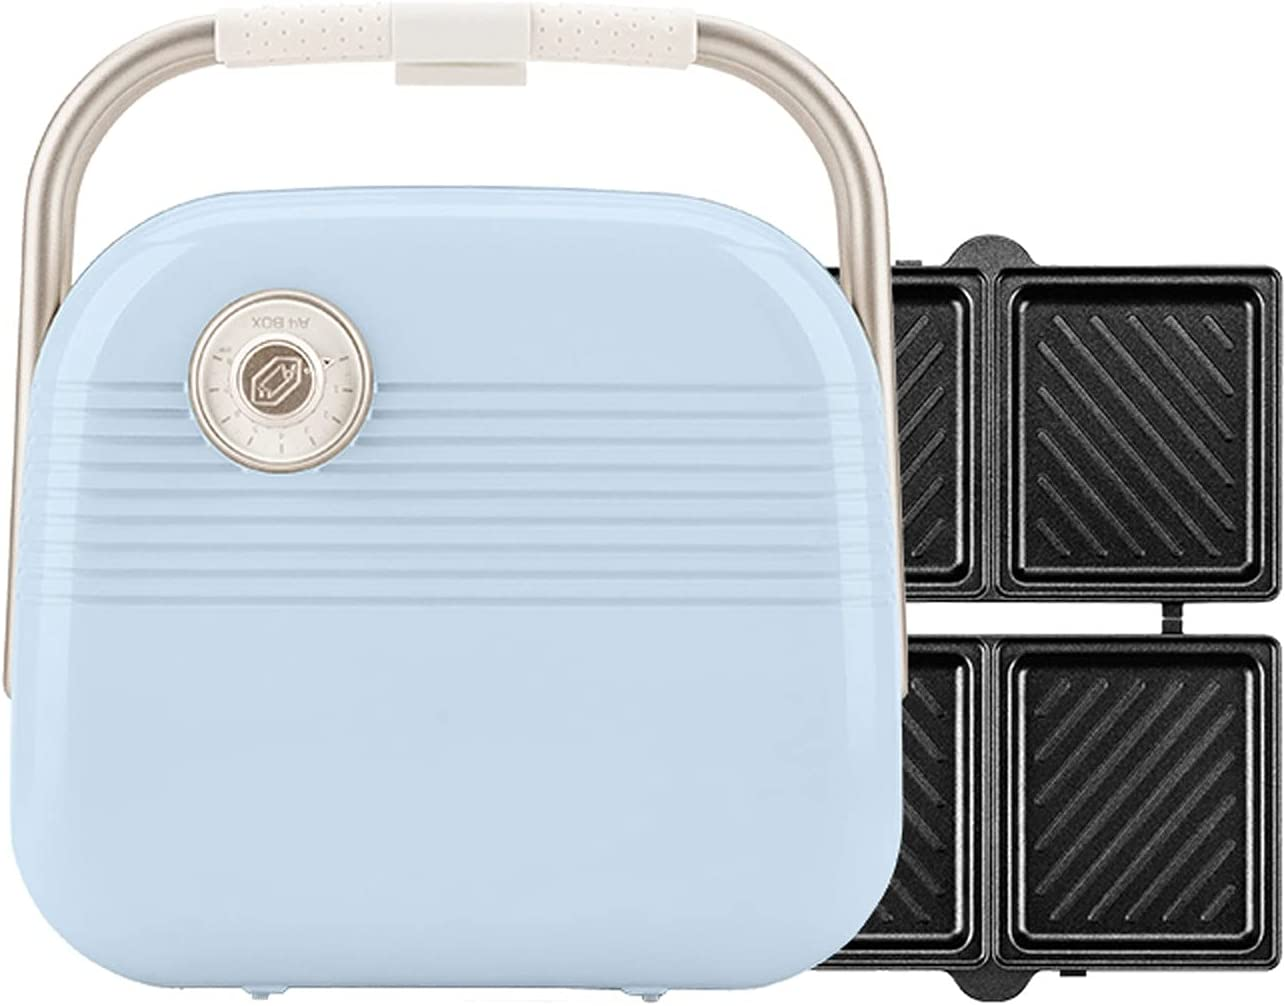 MUMUJJ Sandwich NEW before selling ☆ Maker 2-in-1 900W Grill Electric Ranking TOP15 Panini Toaster